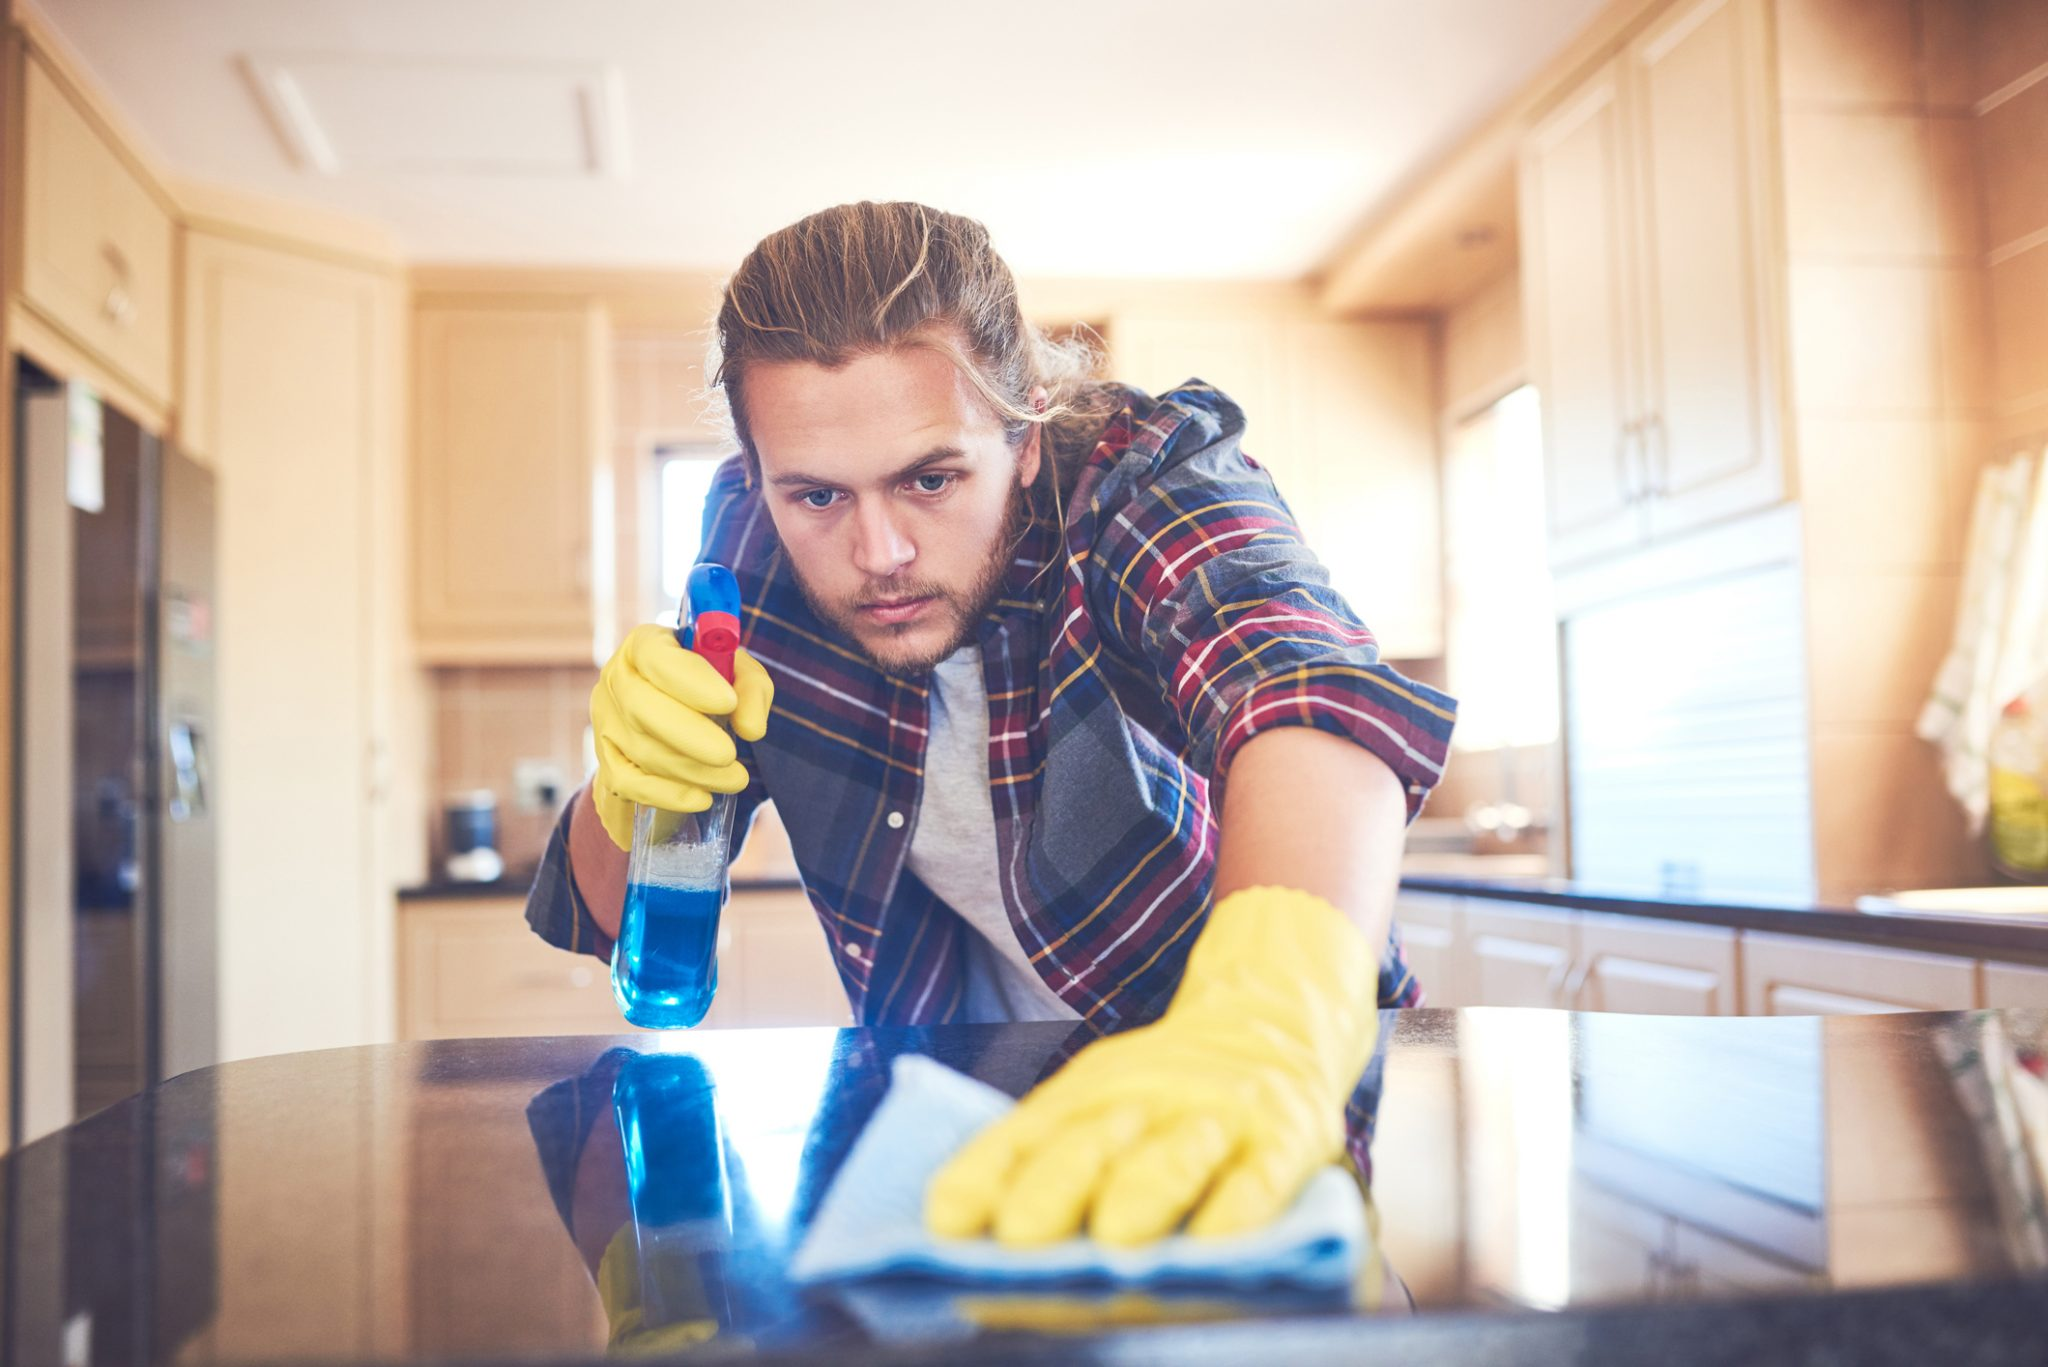 Shot of a young man sanitizing his kitchen